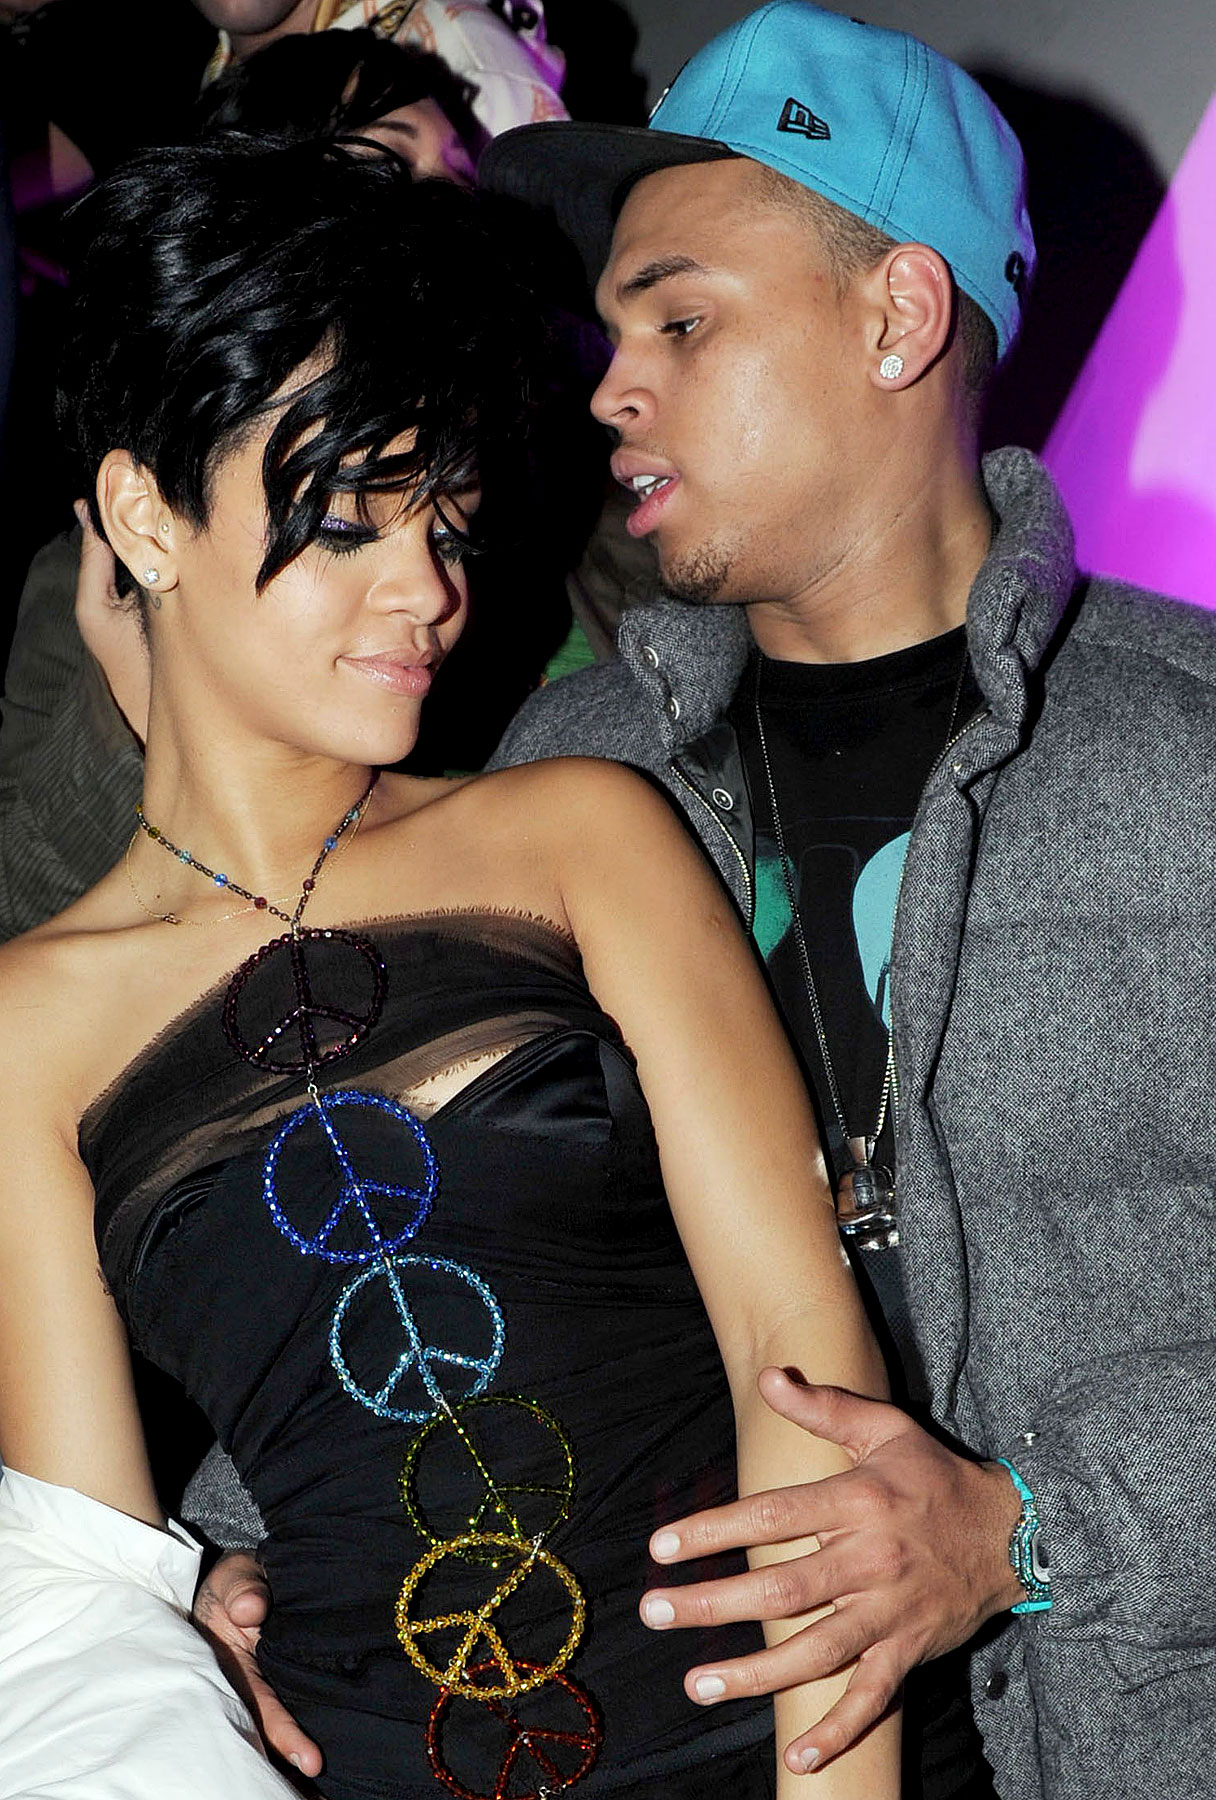 Chris Brown and Rihanna Brawl: Was a Text Message the Cause?